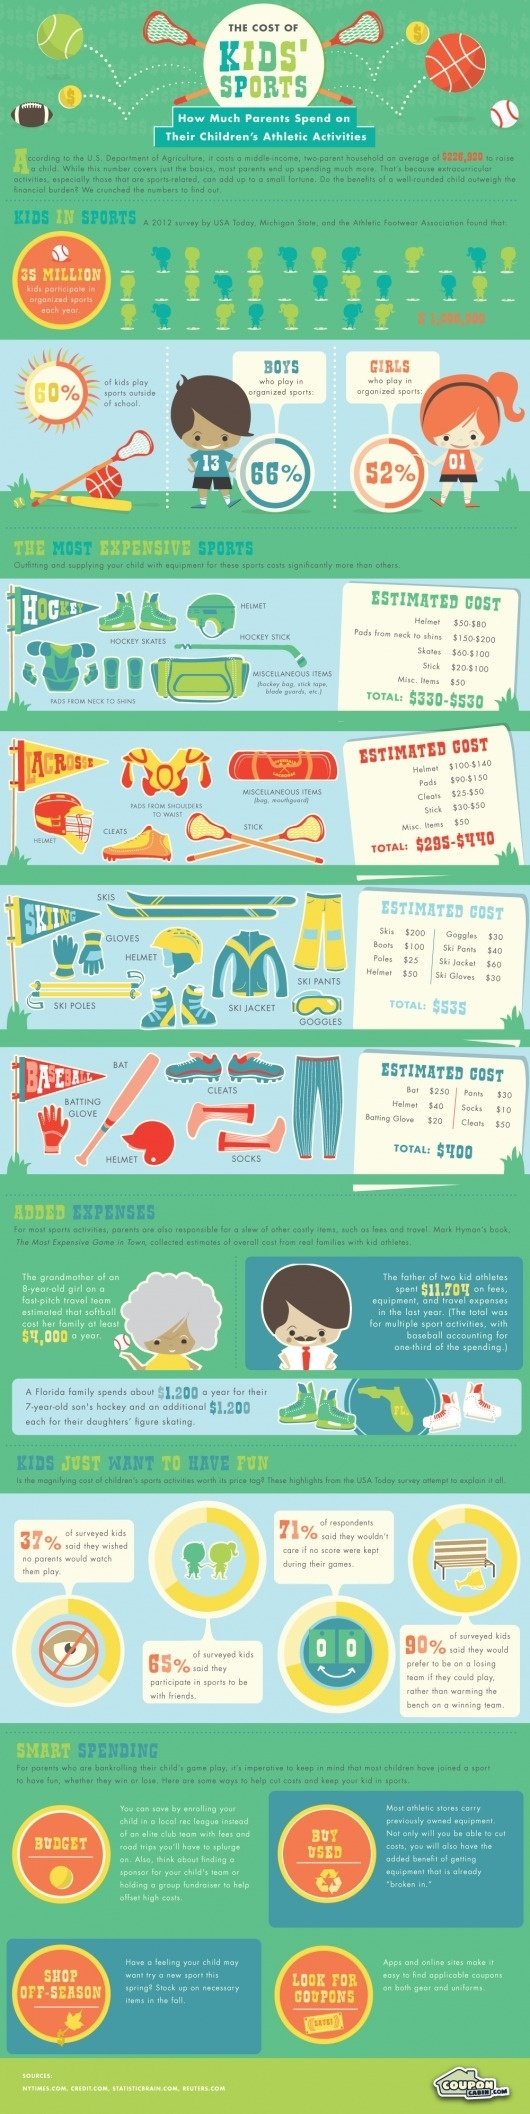 Cost of Kids in Sports